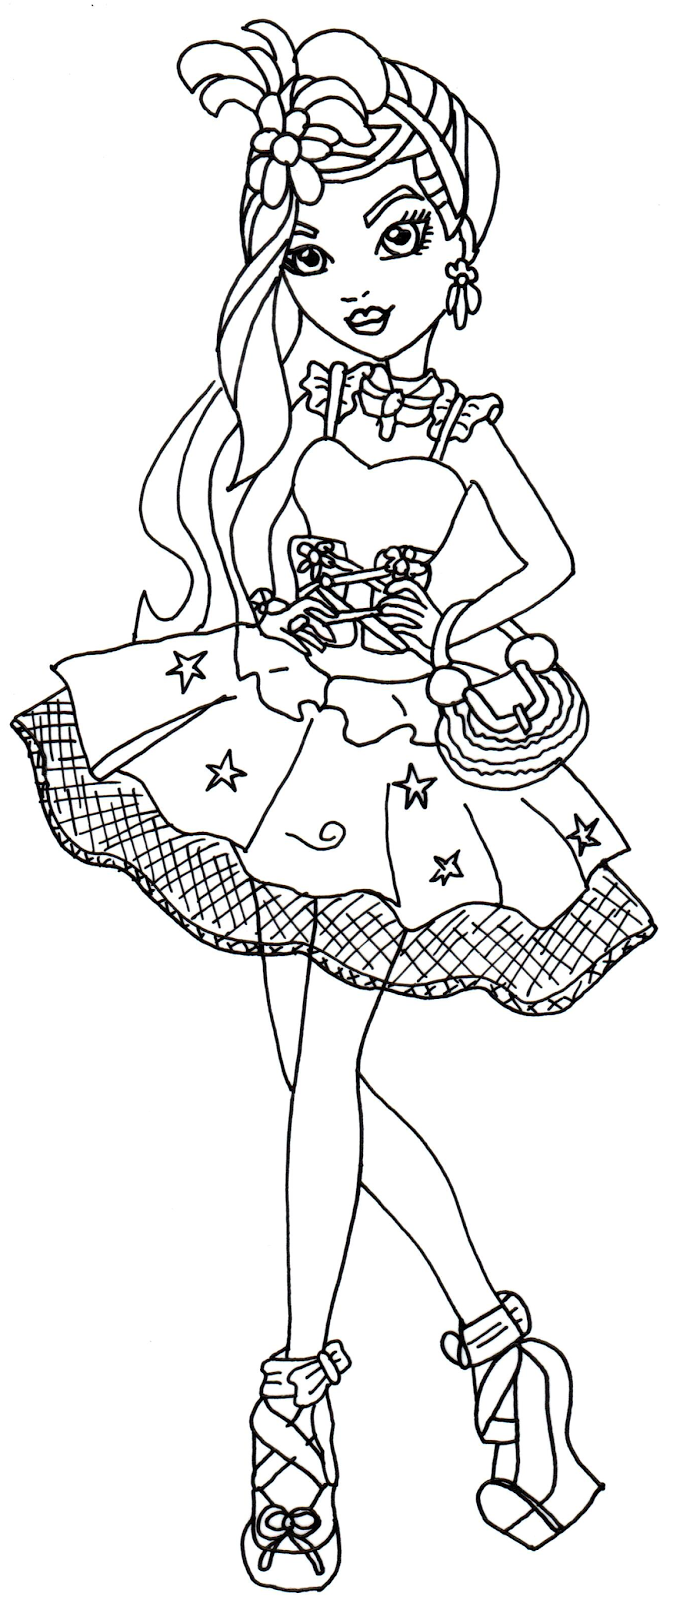 Free Printable Ever After High Coloring Pages Duchess Swan Ever After High Coloring Page